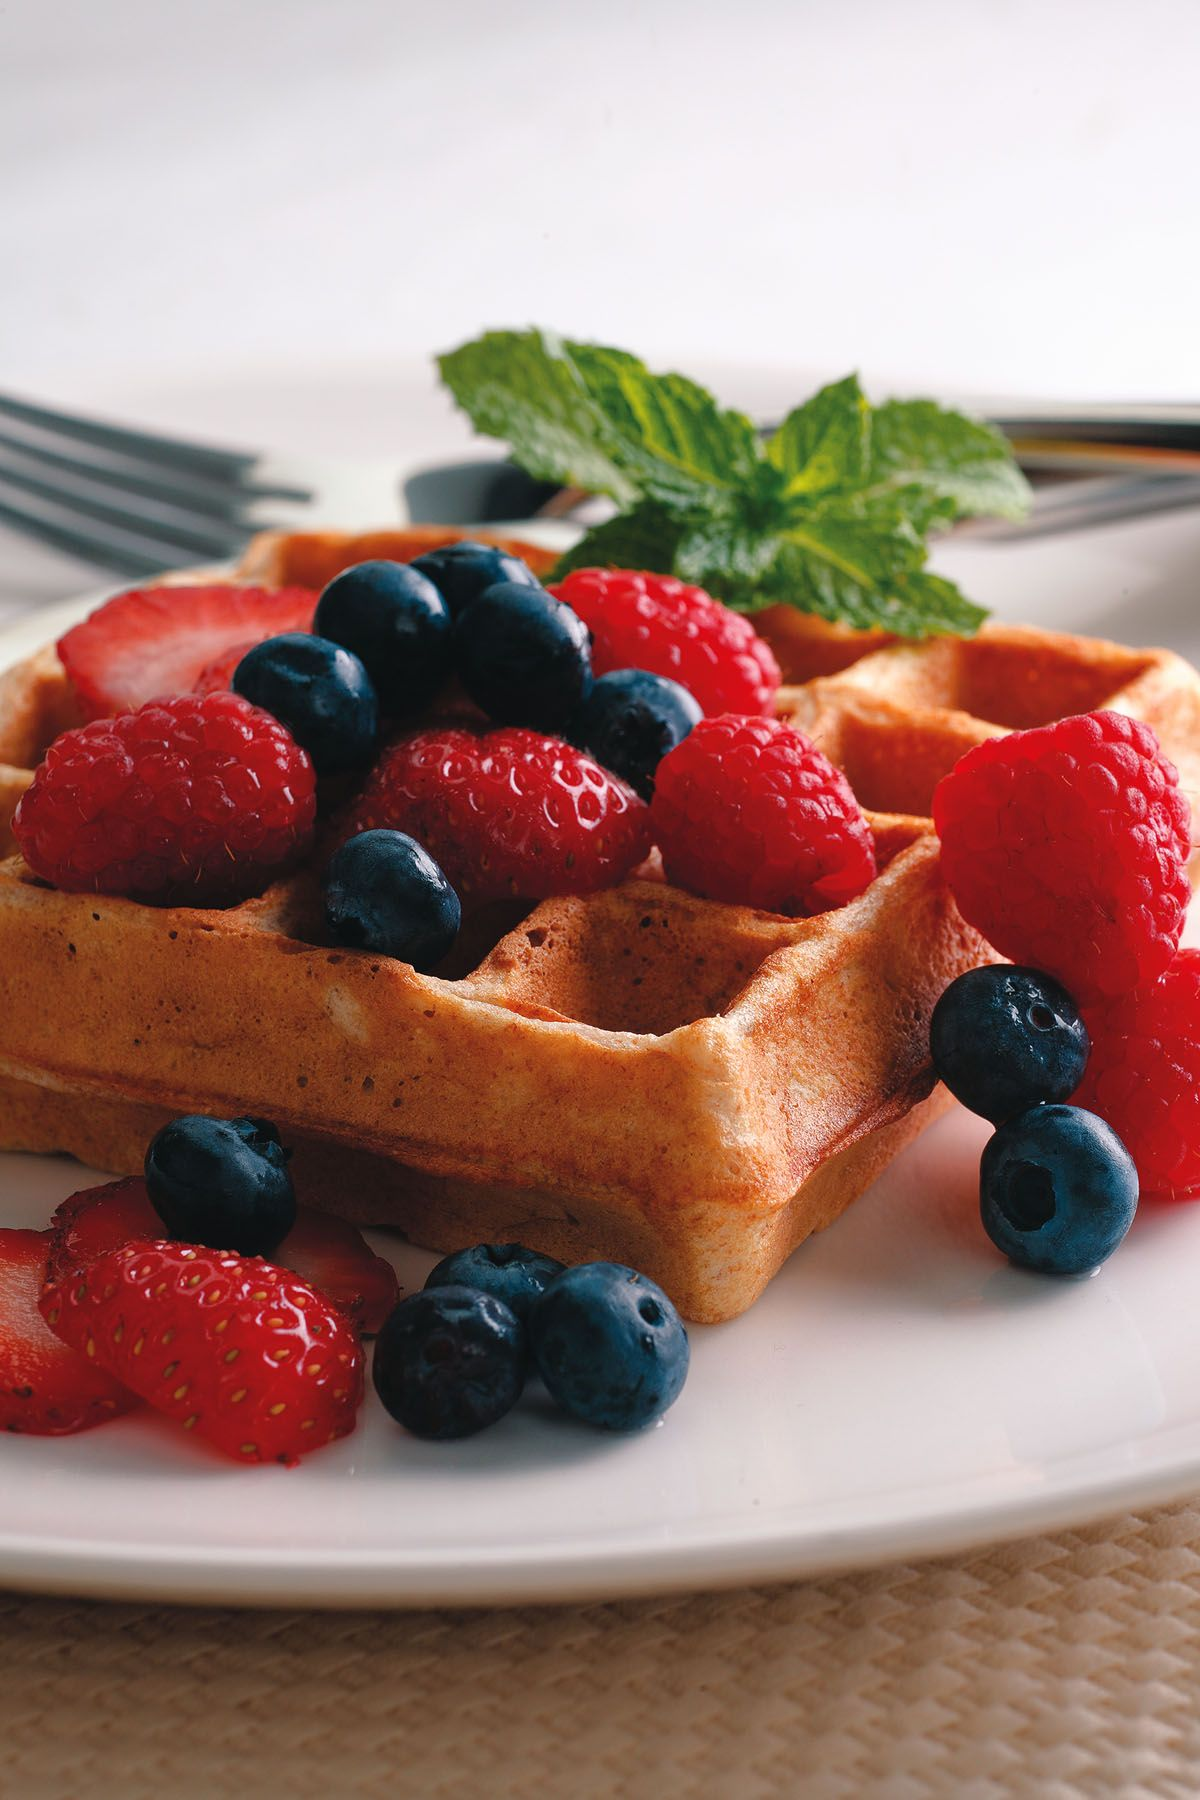 Waffles worth waking up for - and healthy too!